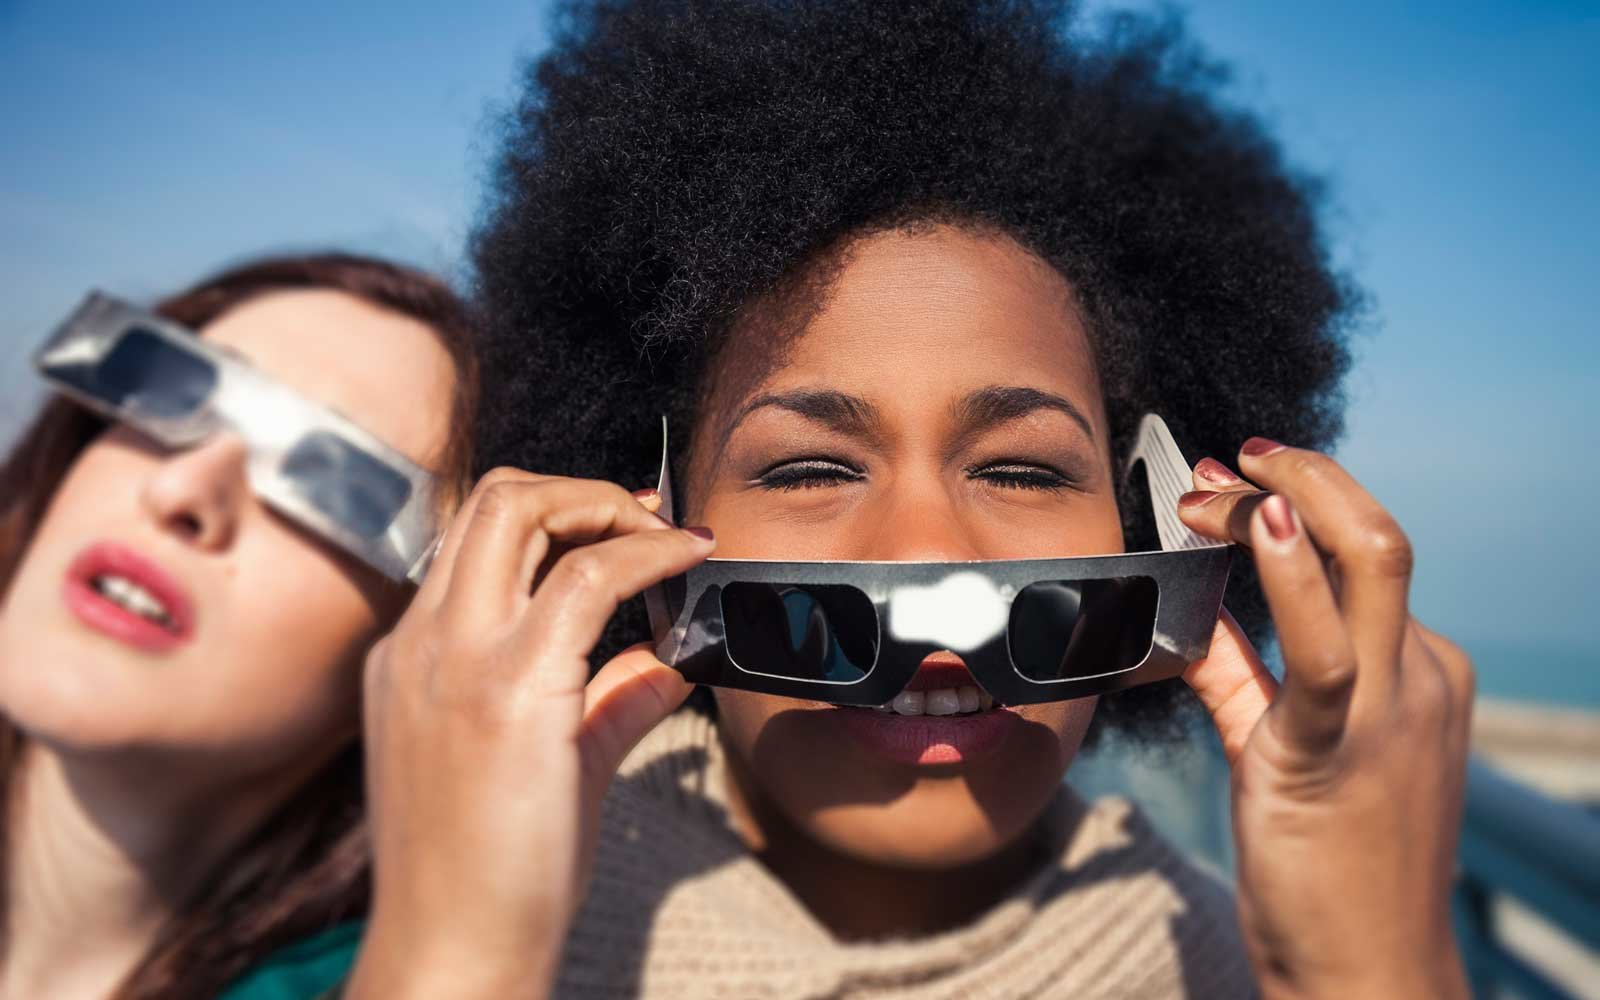 How to Protect Your Eyes During the 2017 Solar Eclipse